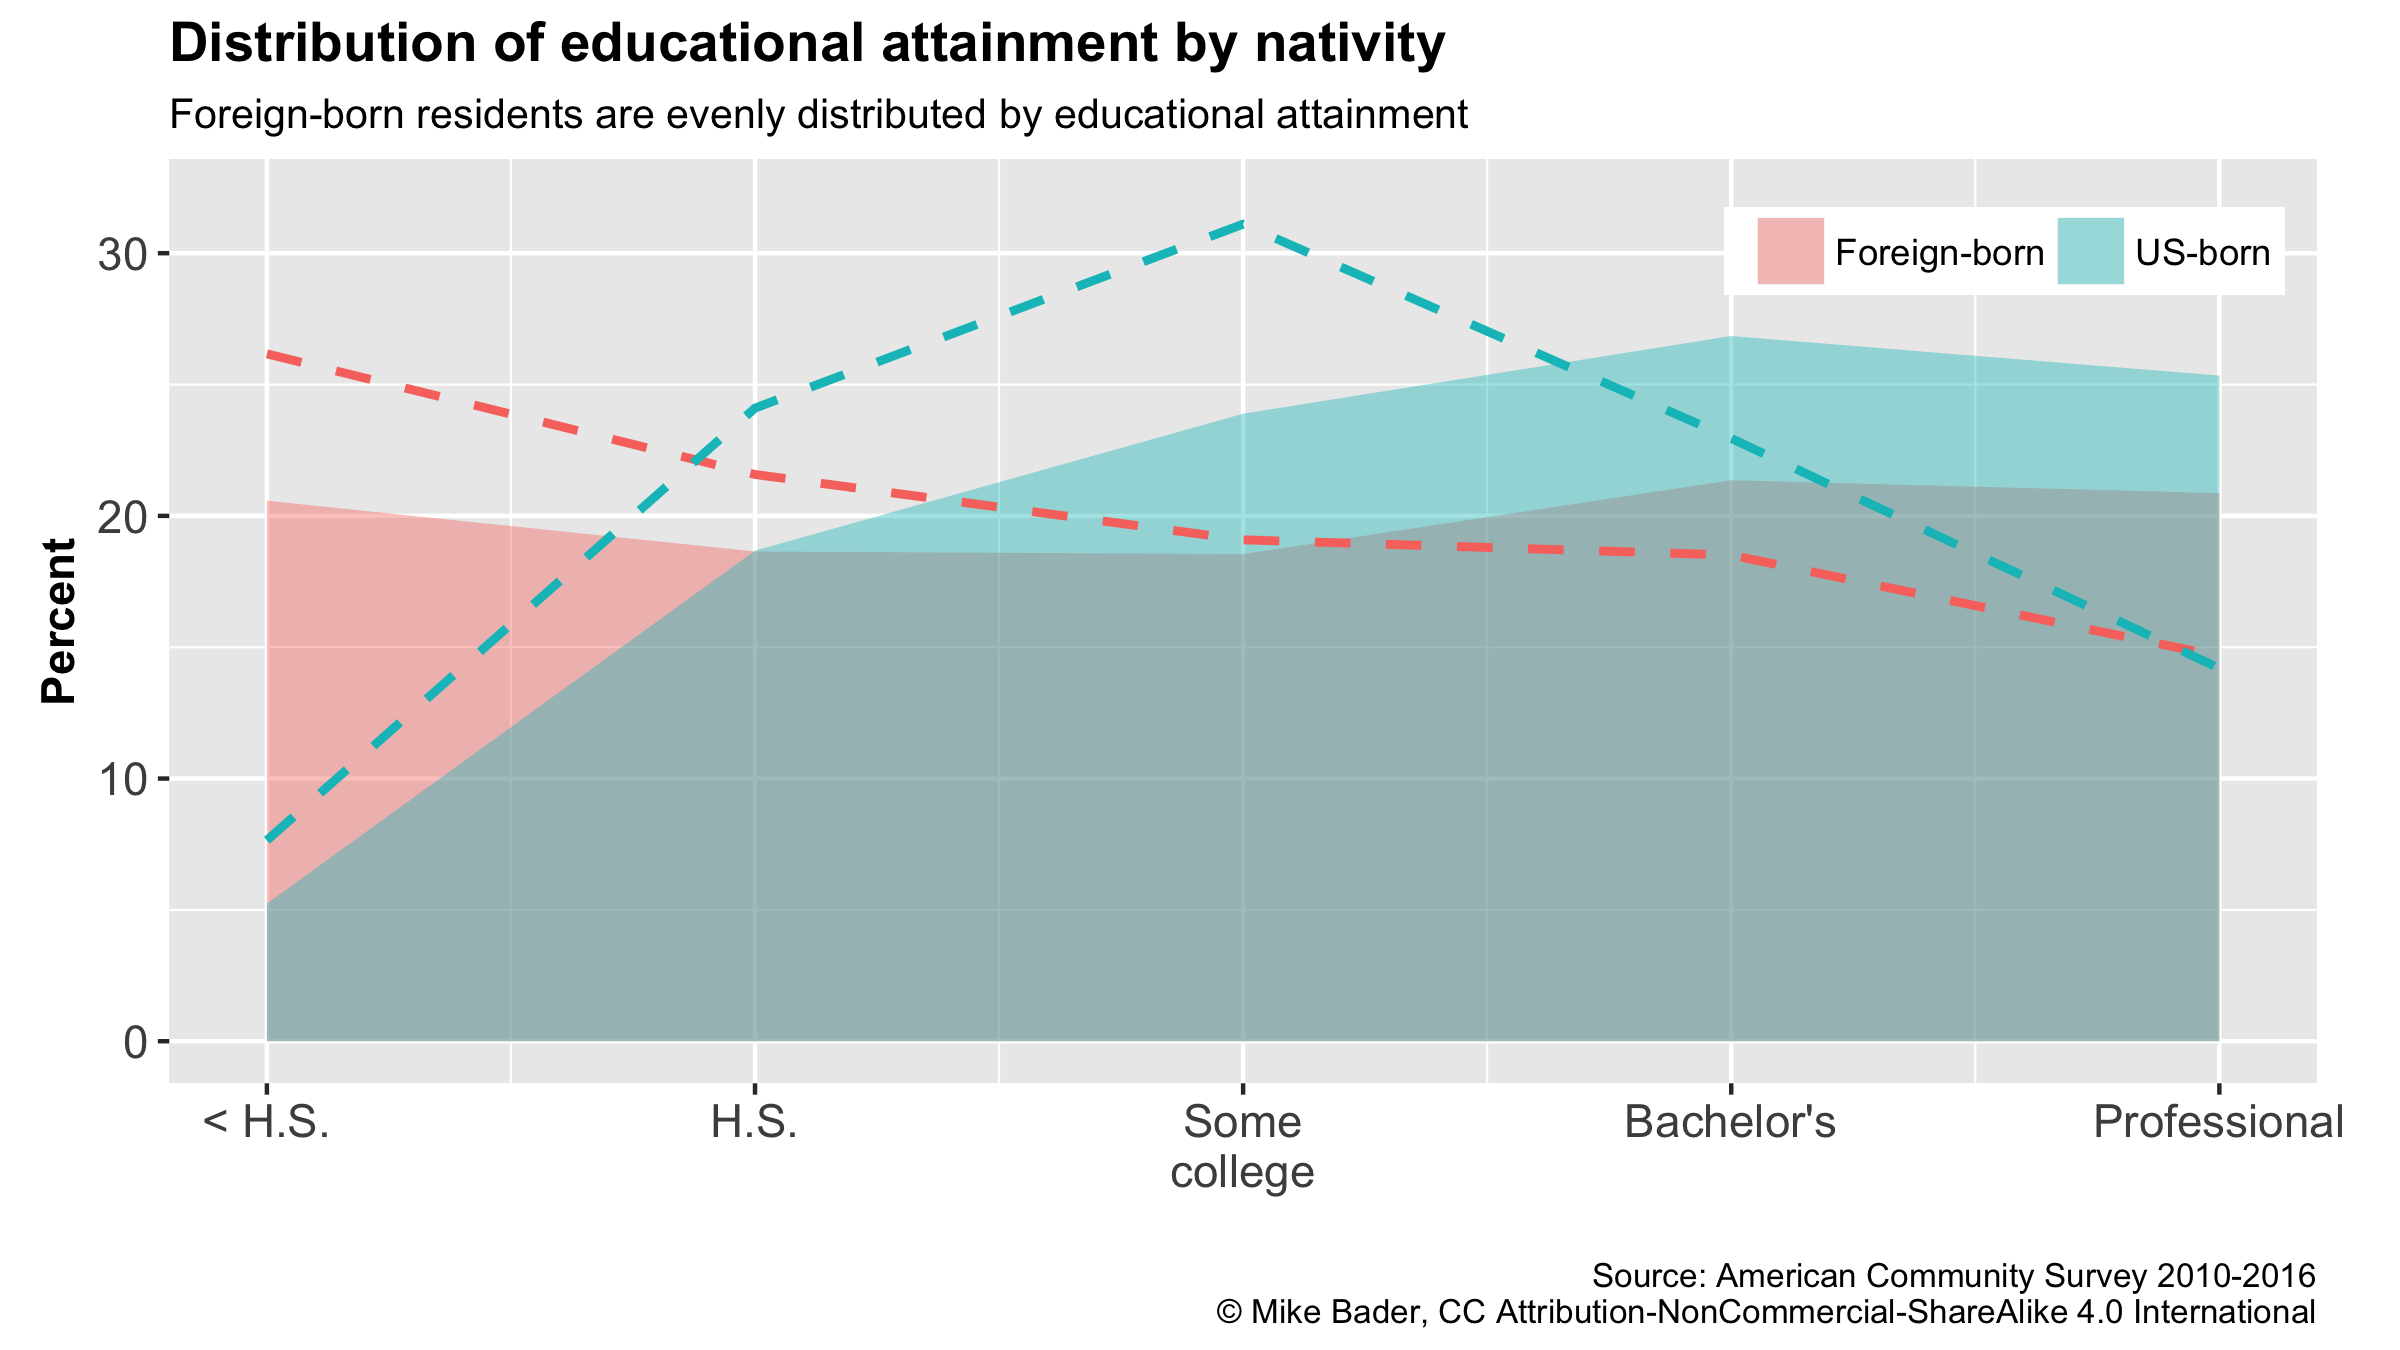 Educational Attainment by Nativity